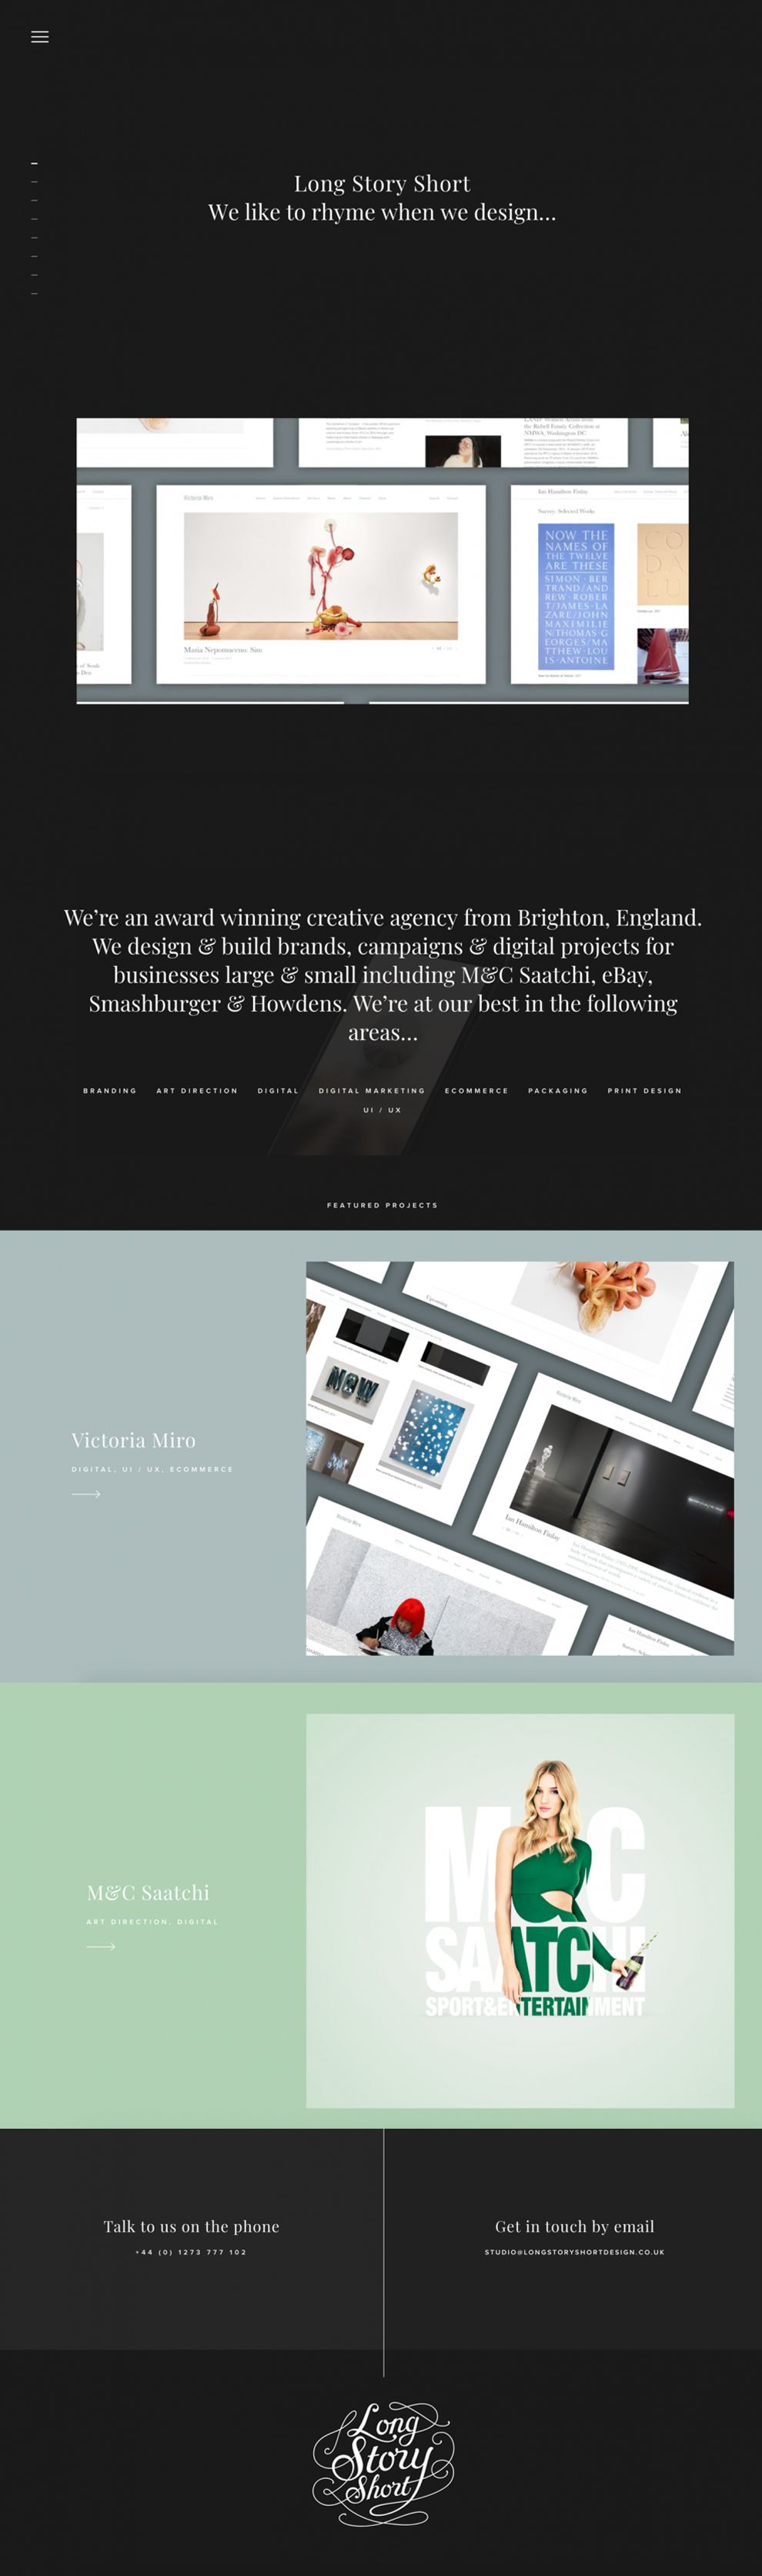 Long Story Short Design Clean Homepage